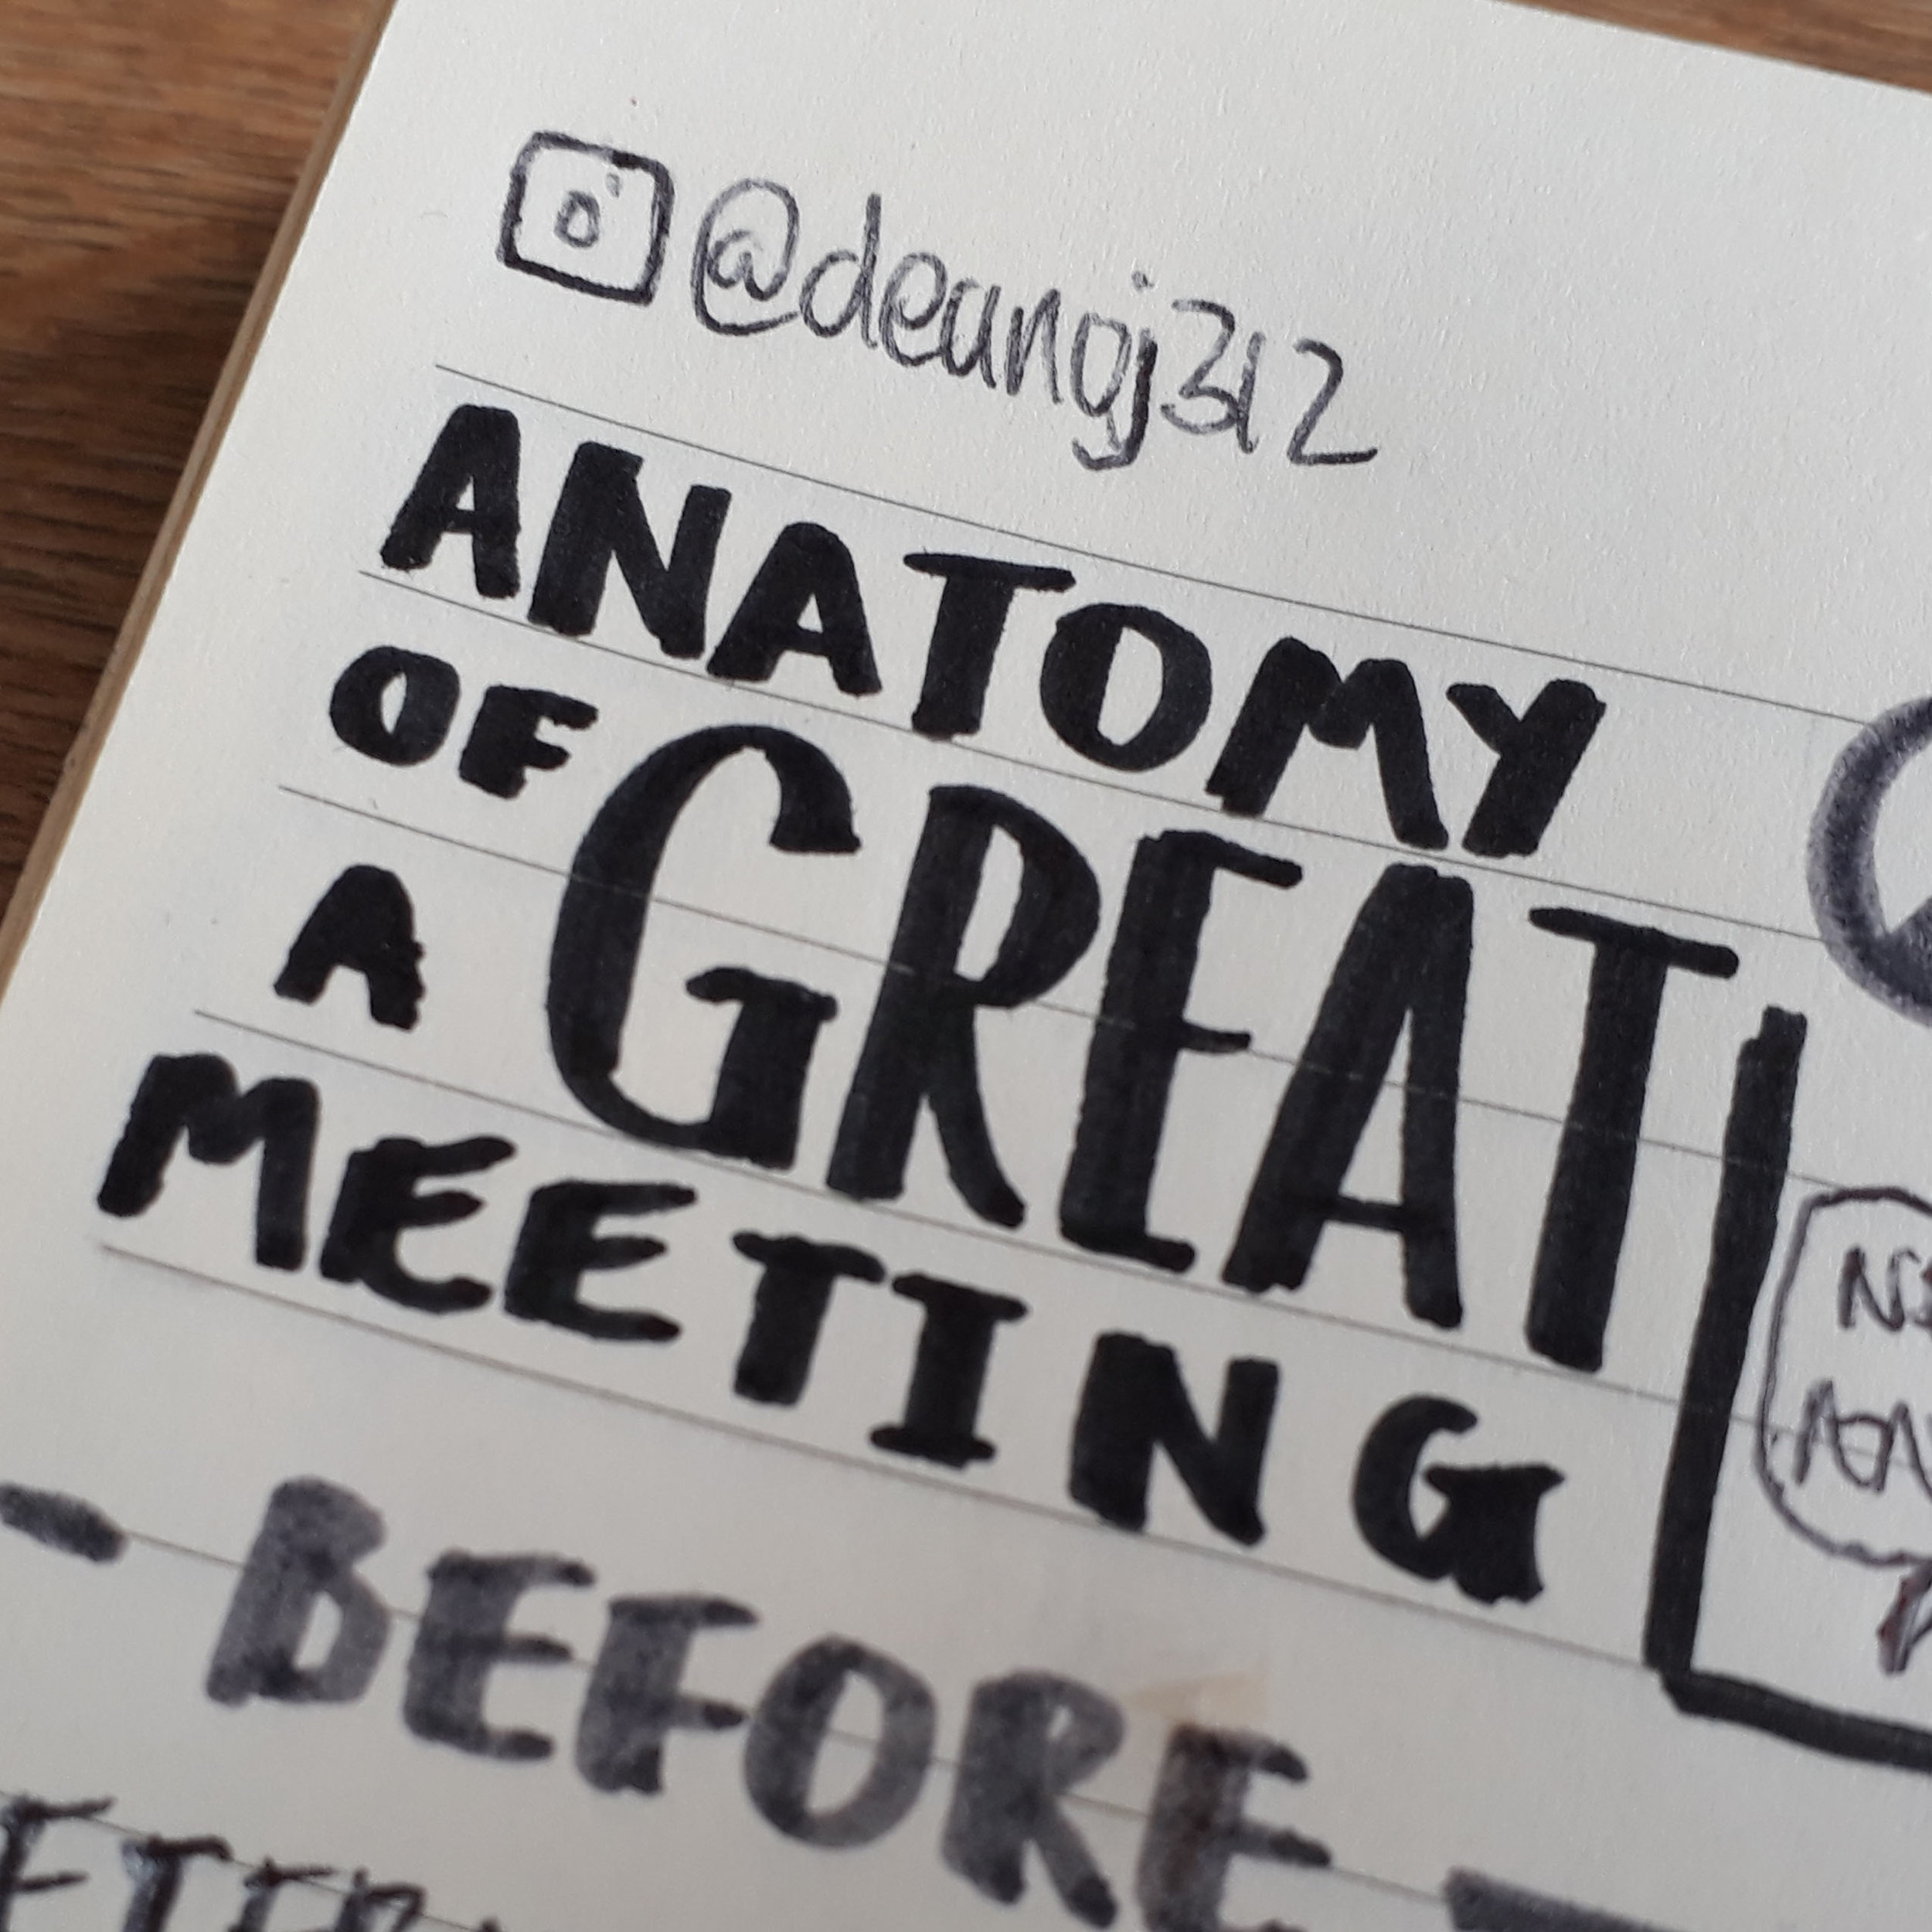 AnatomyOfAGreatMeeting2.jpg